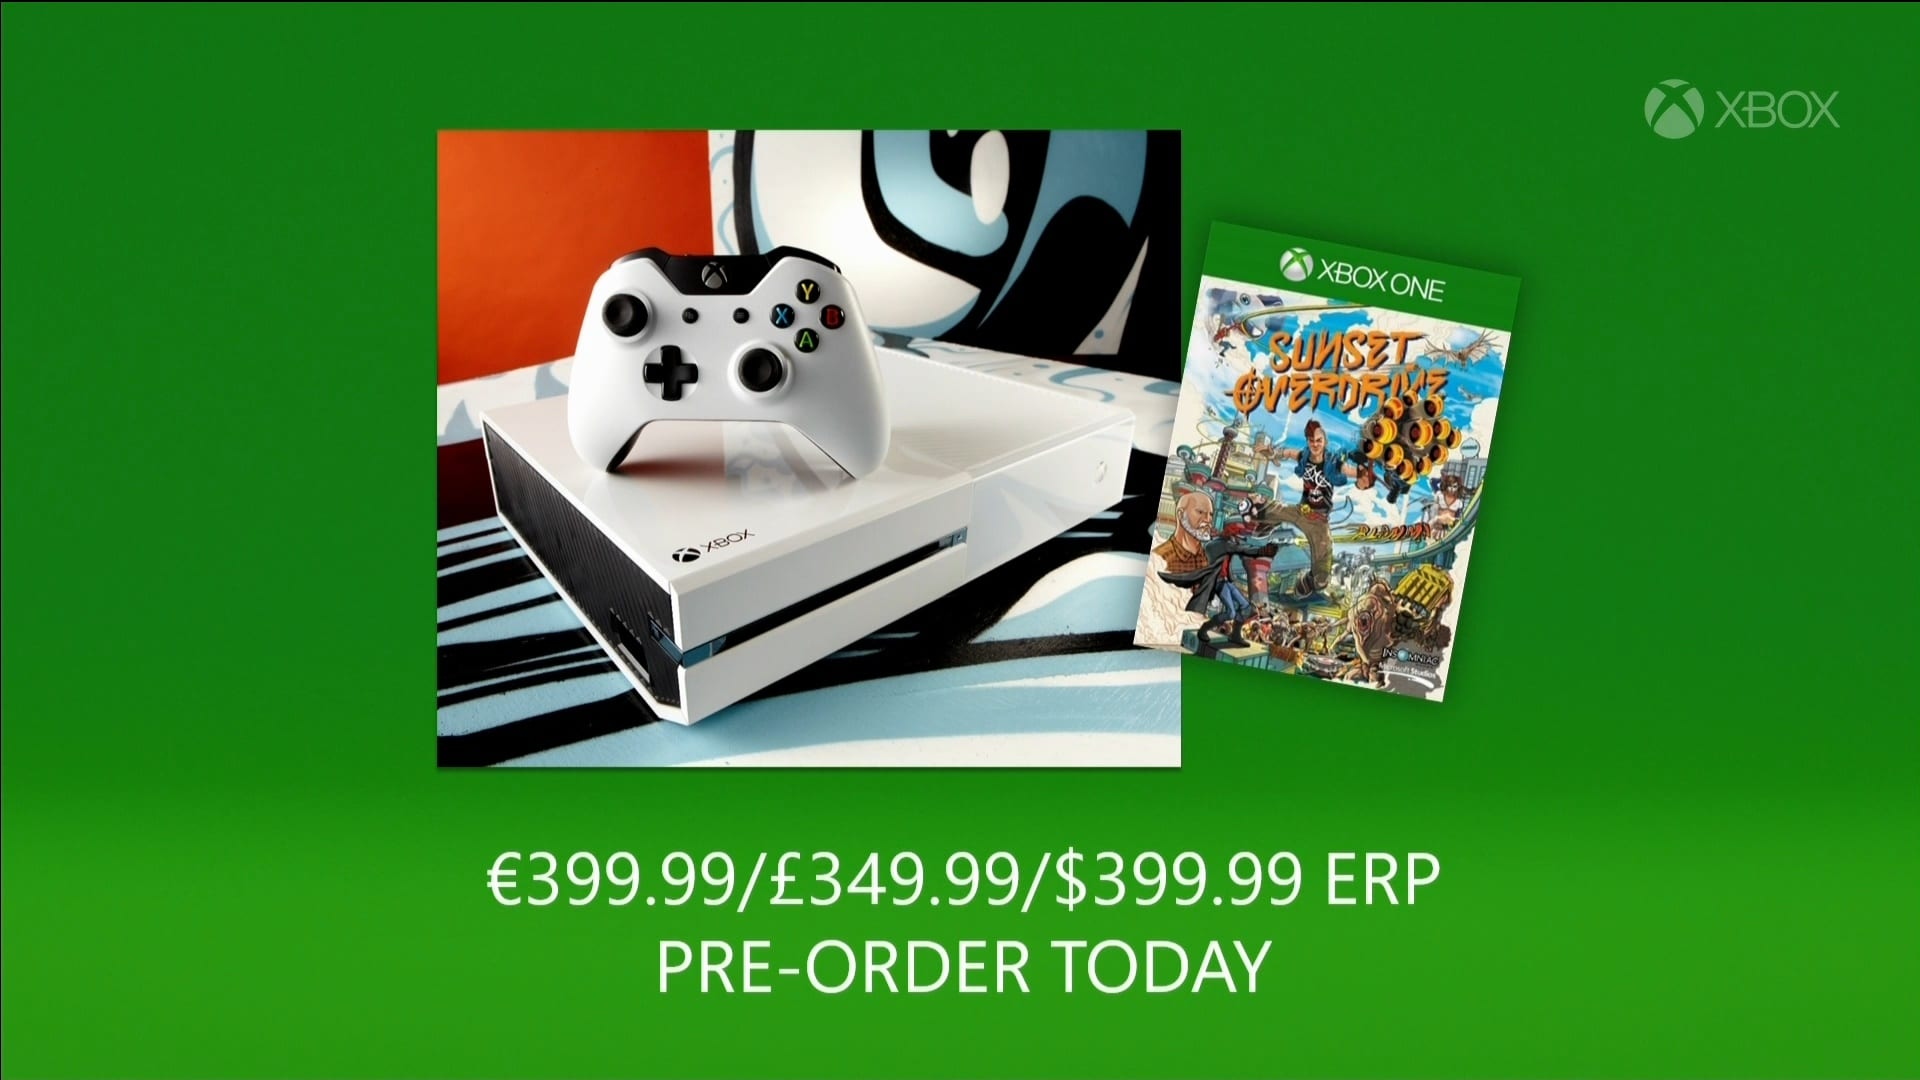 xbox_one_sunset_overdrive_bundle